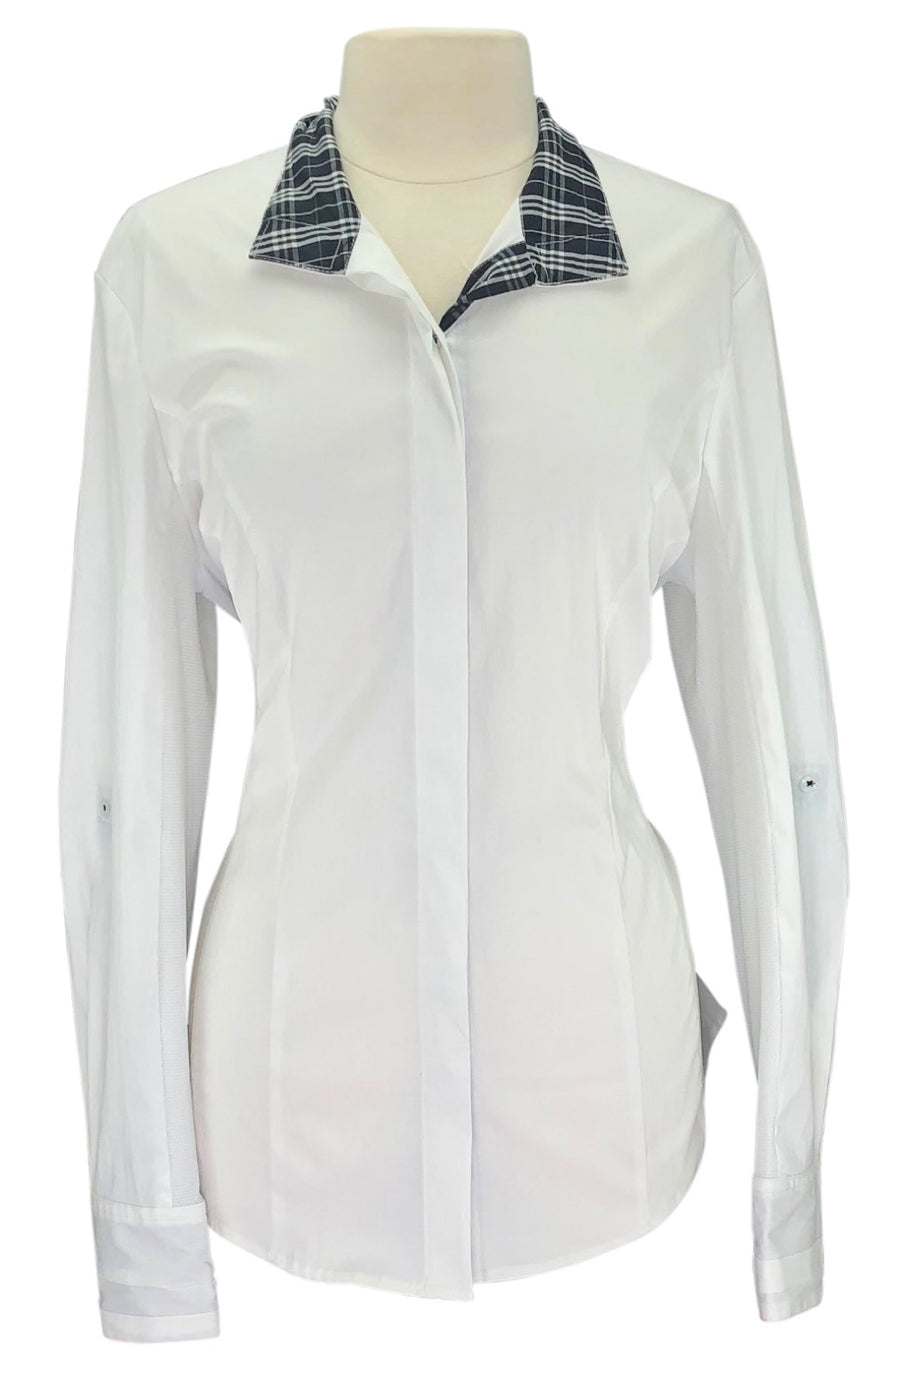 front view of Asmar Equestrian Show Shirt in White/Black Plaid